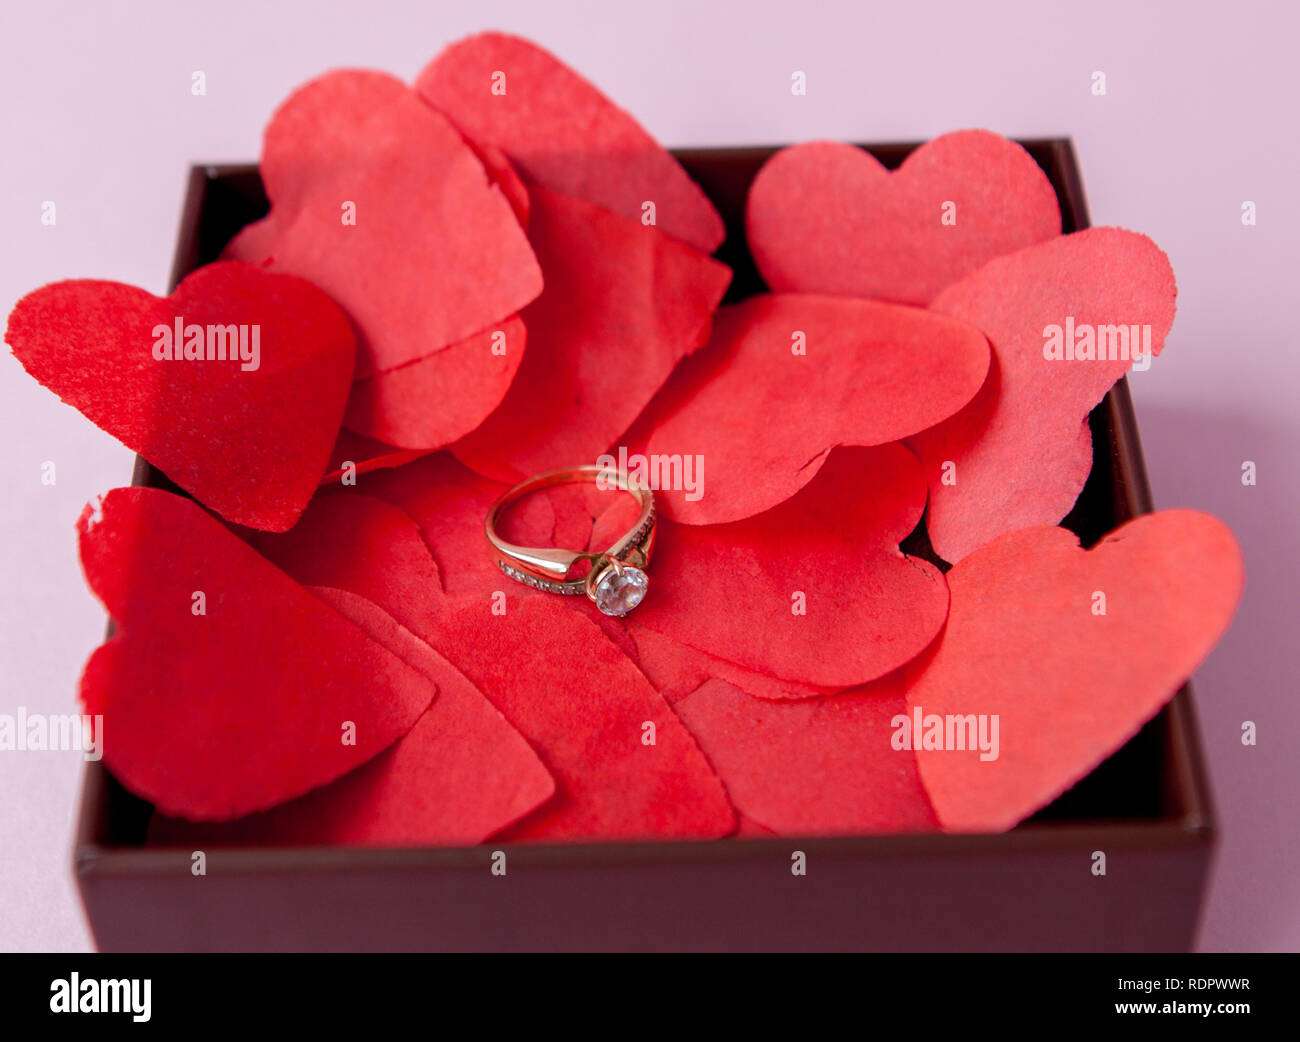 Wedding rings on the red hearts. Pink background. The concept of betrothal, divorce, parting, infidelity .Selective focus. - Stock Image